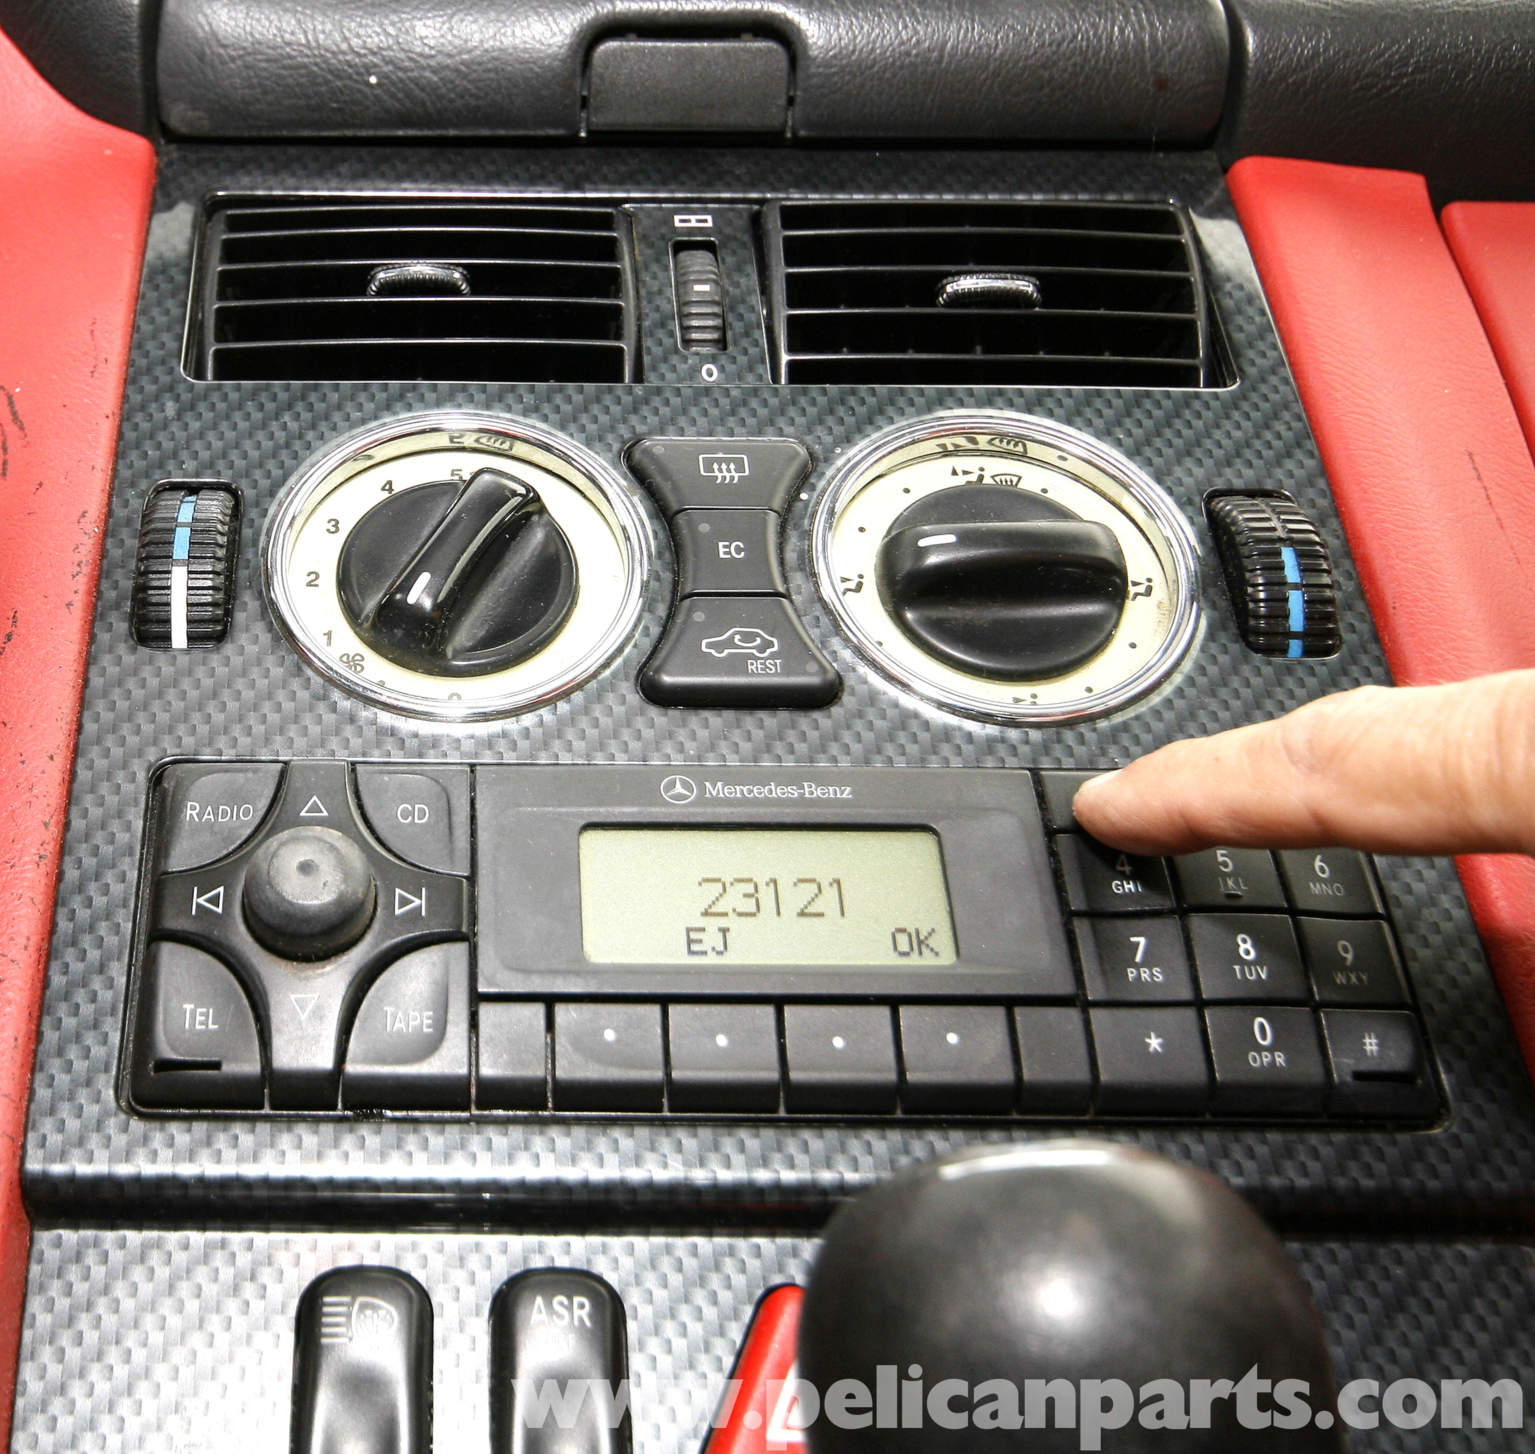 1998 Mercedes Benz Slk Class Suspension: [How To Remove Radio From A 1998 Mercedes Benz Sl Class